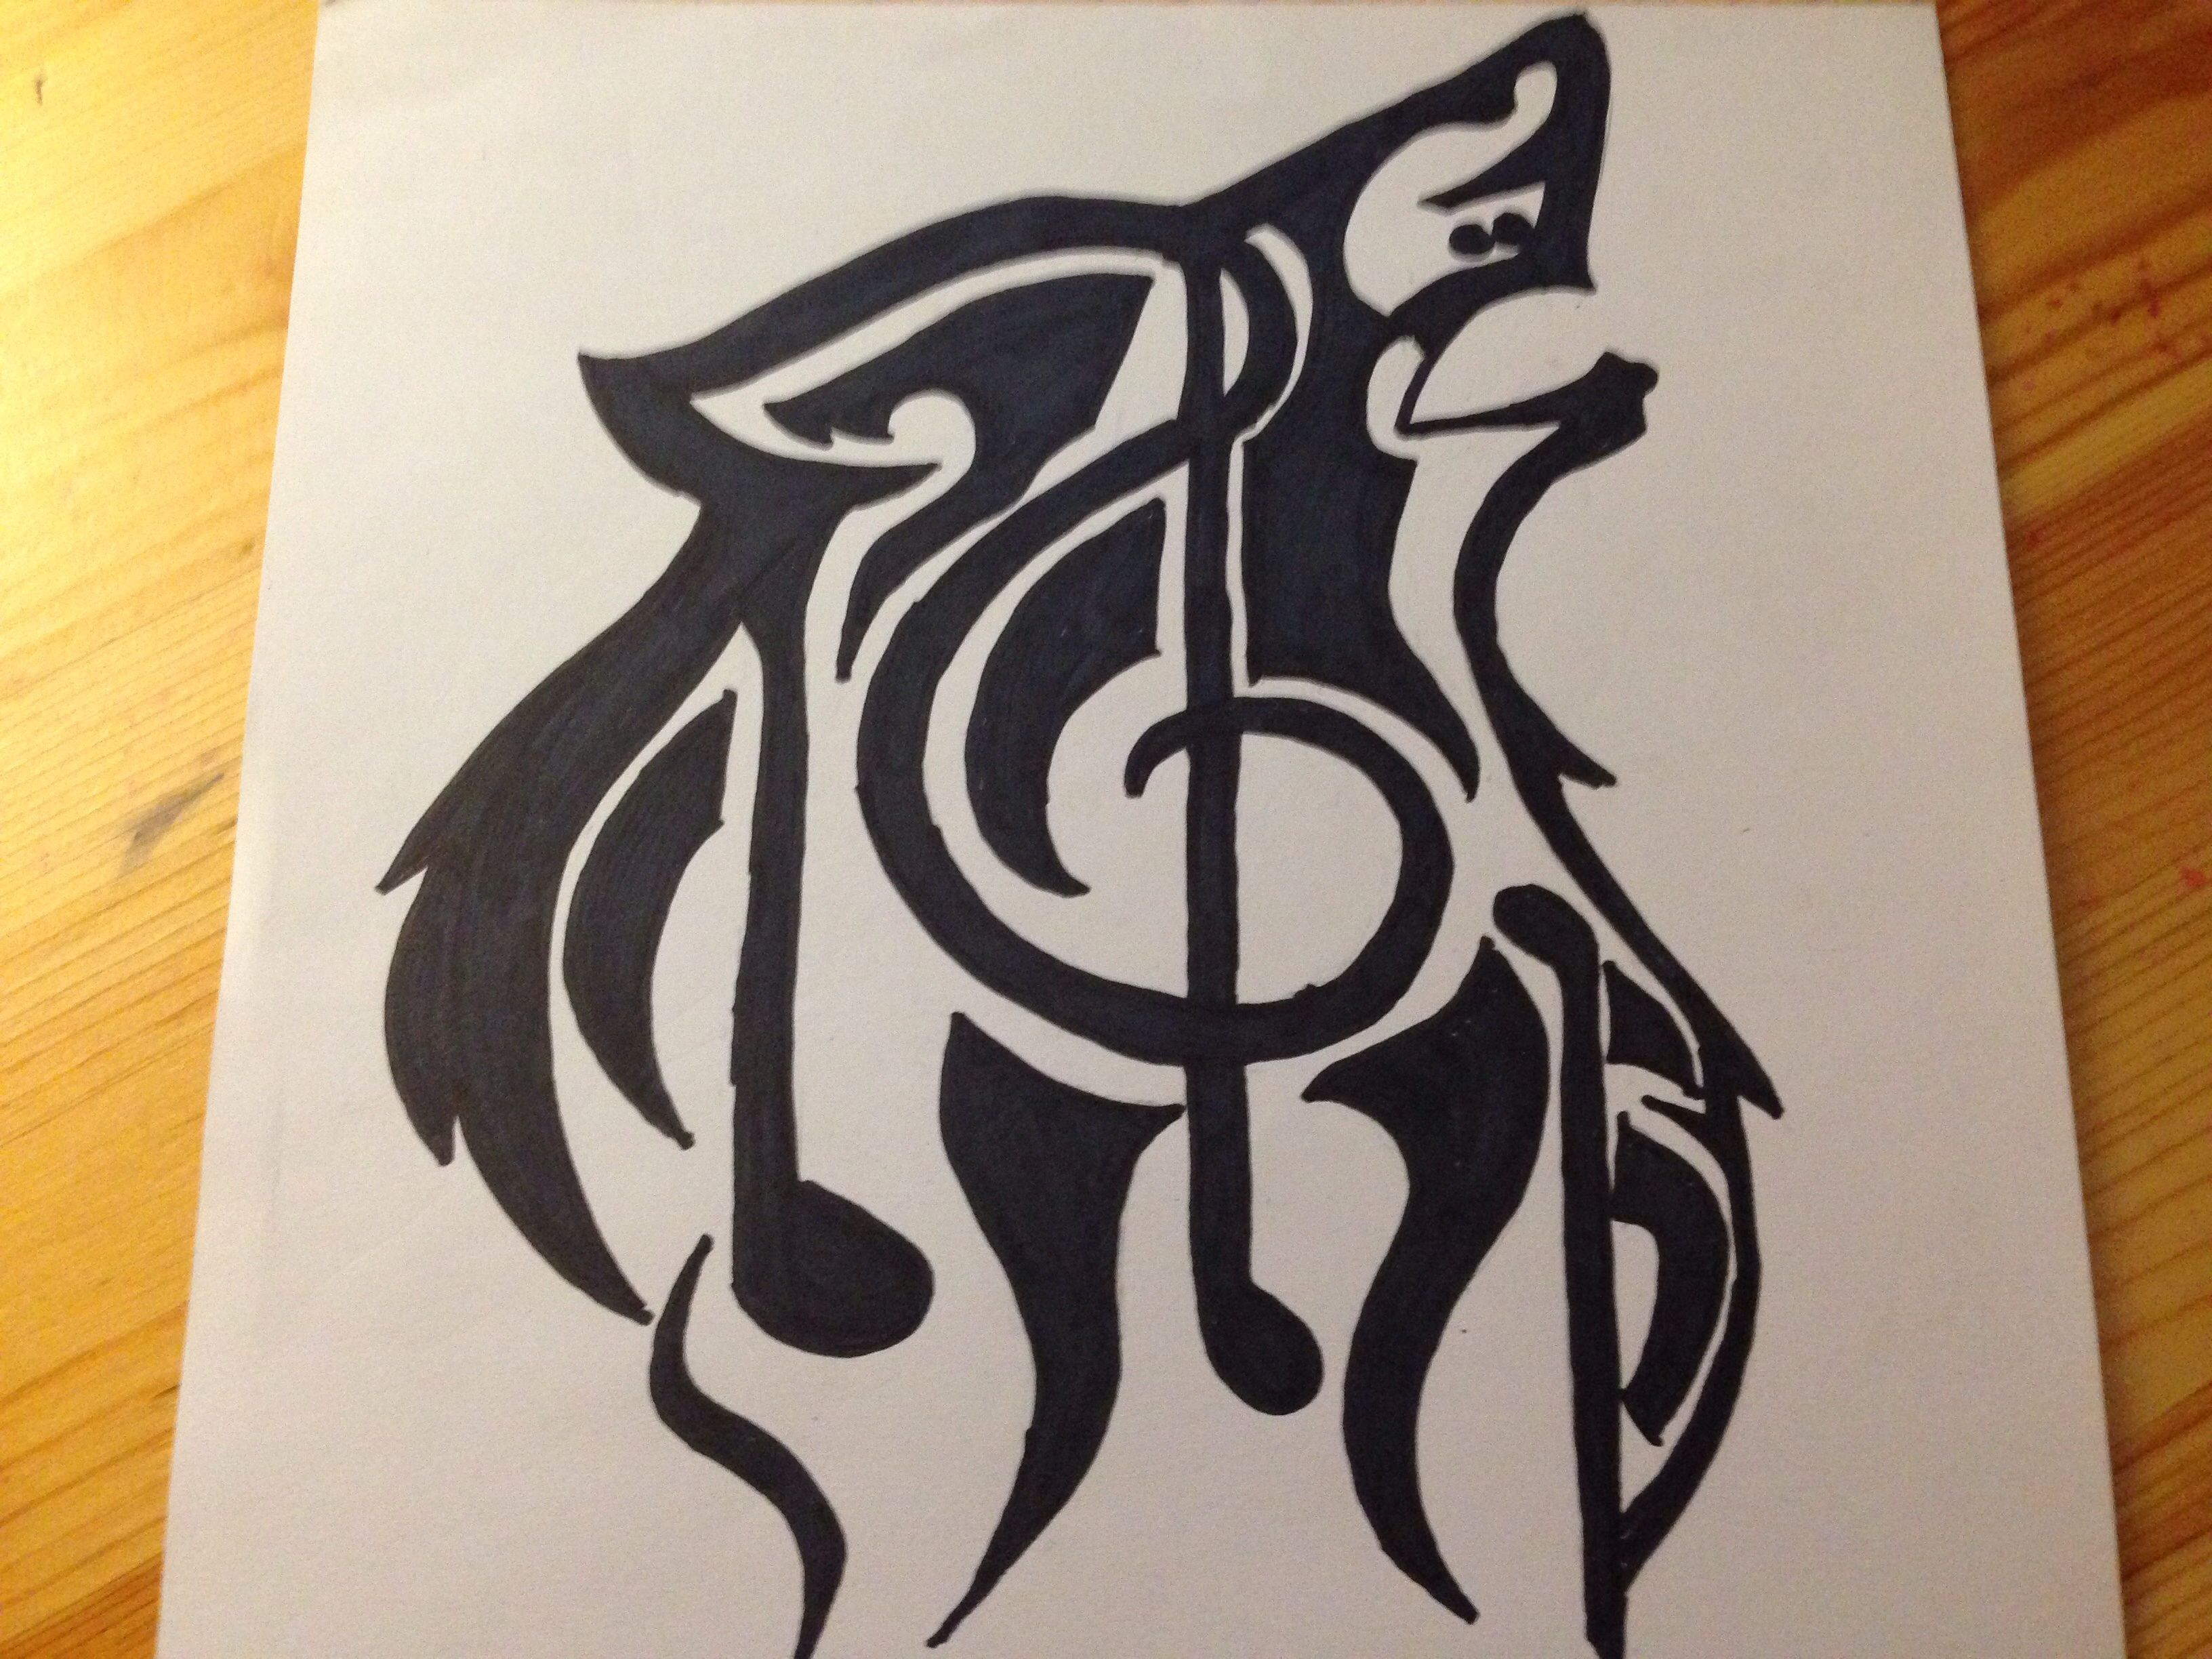 Wolf With Music Note Drawing - SilentArtist1018 © 2015 - Dec 7, 2013